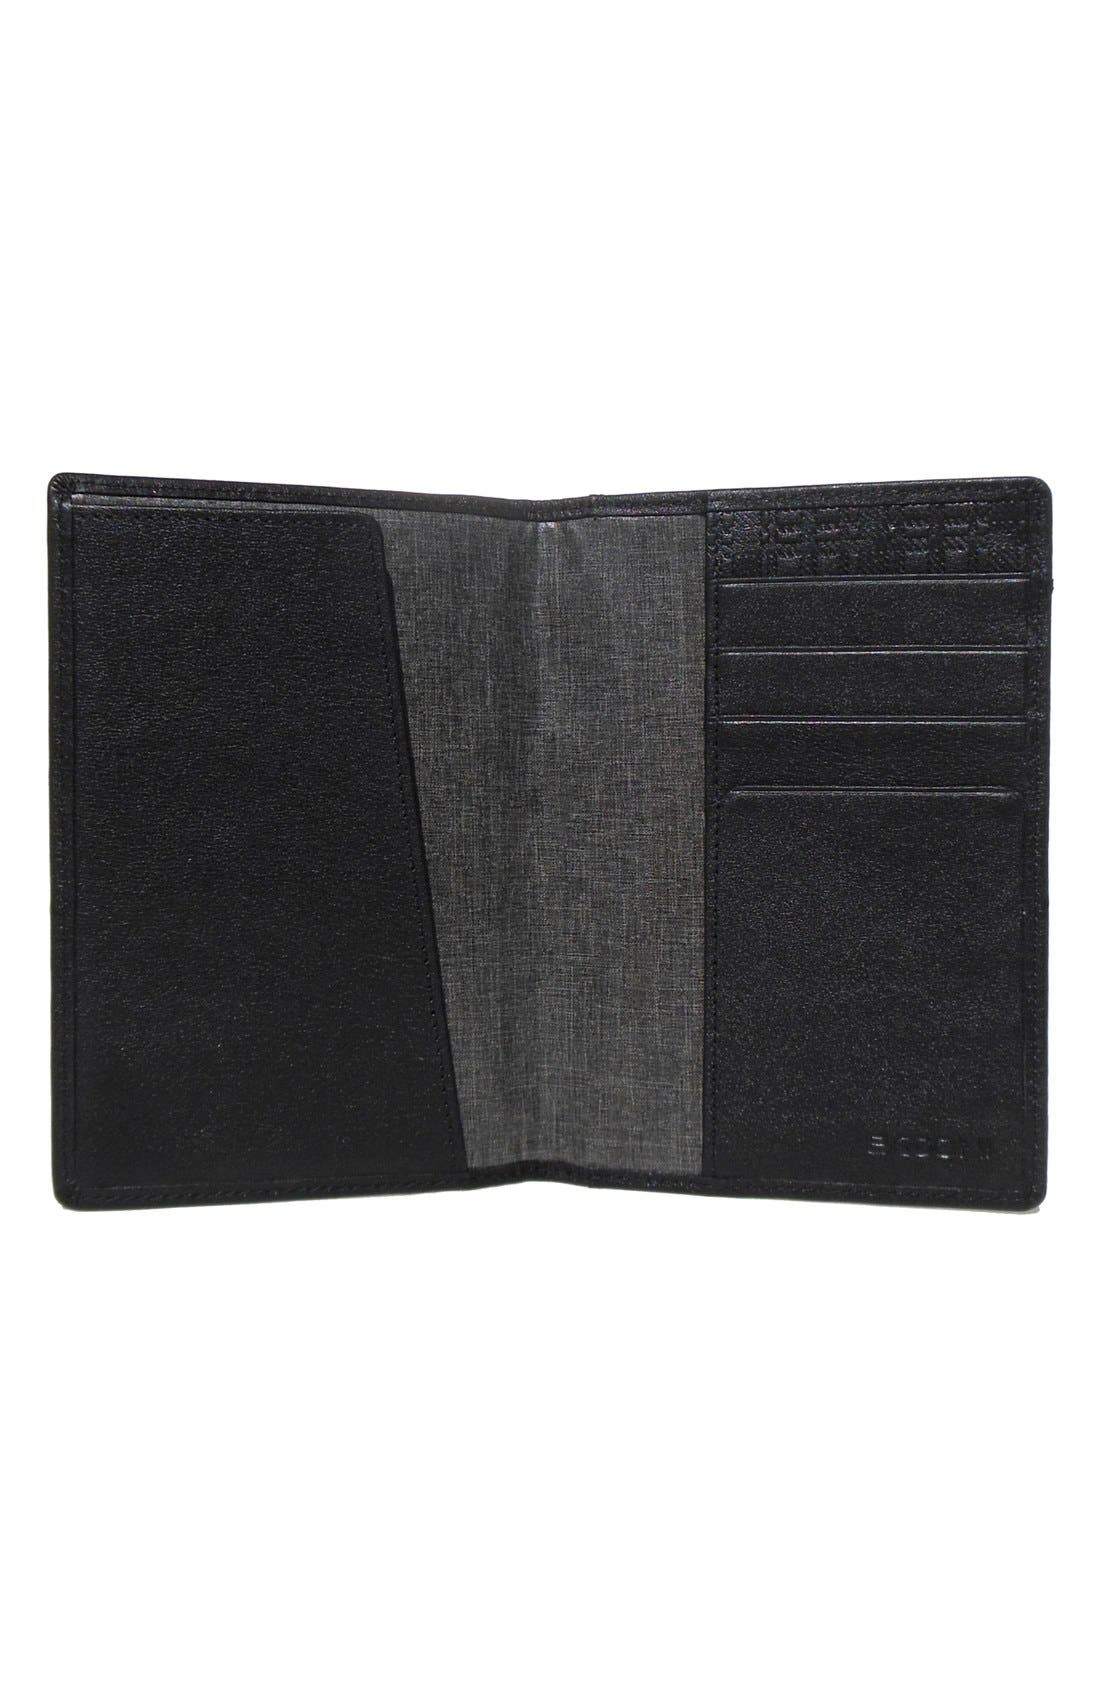 BOCONI, 'Grant' RFID Blocker Leather Passport Case, Main thumbnail 1, color, BLACK/ GREY